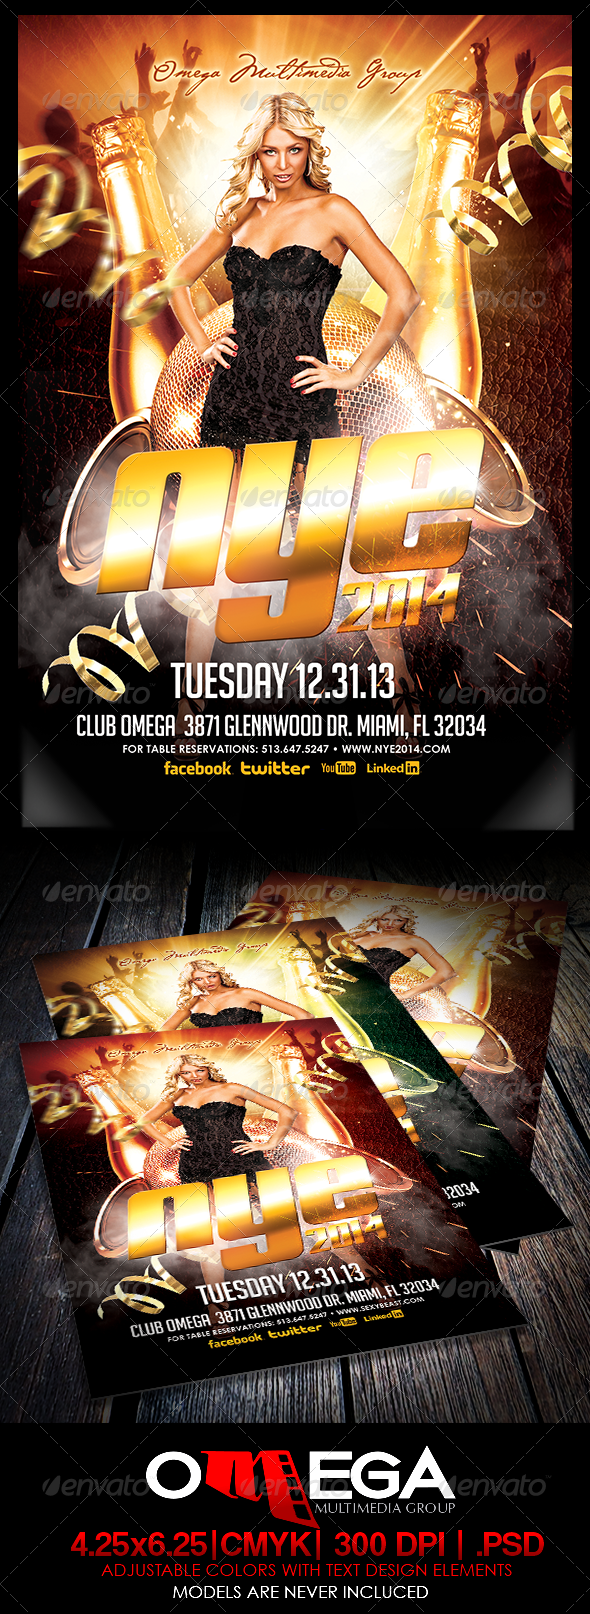 NYE 2014 - Events Flyers